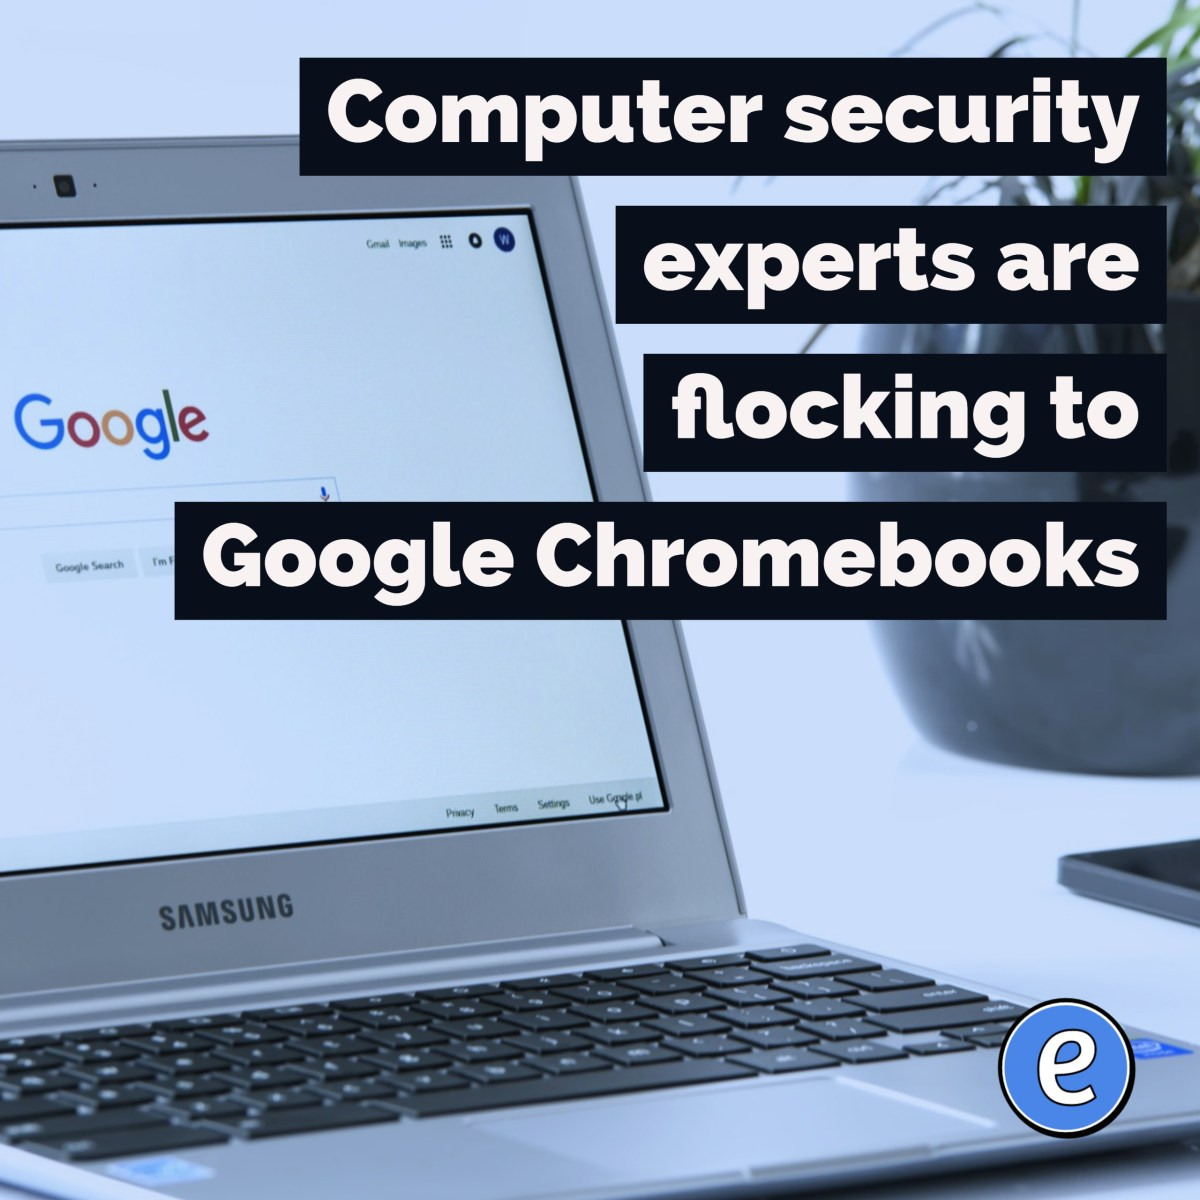 Computer security experts are flocking to Google Chromebooks